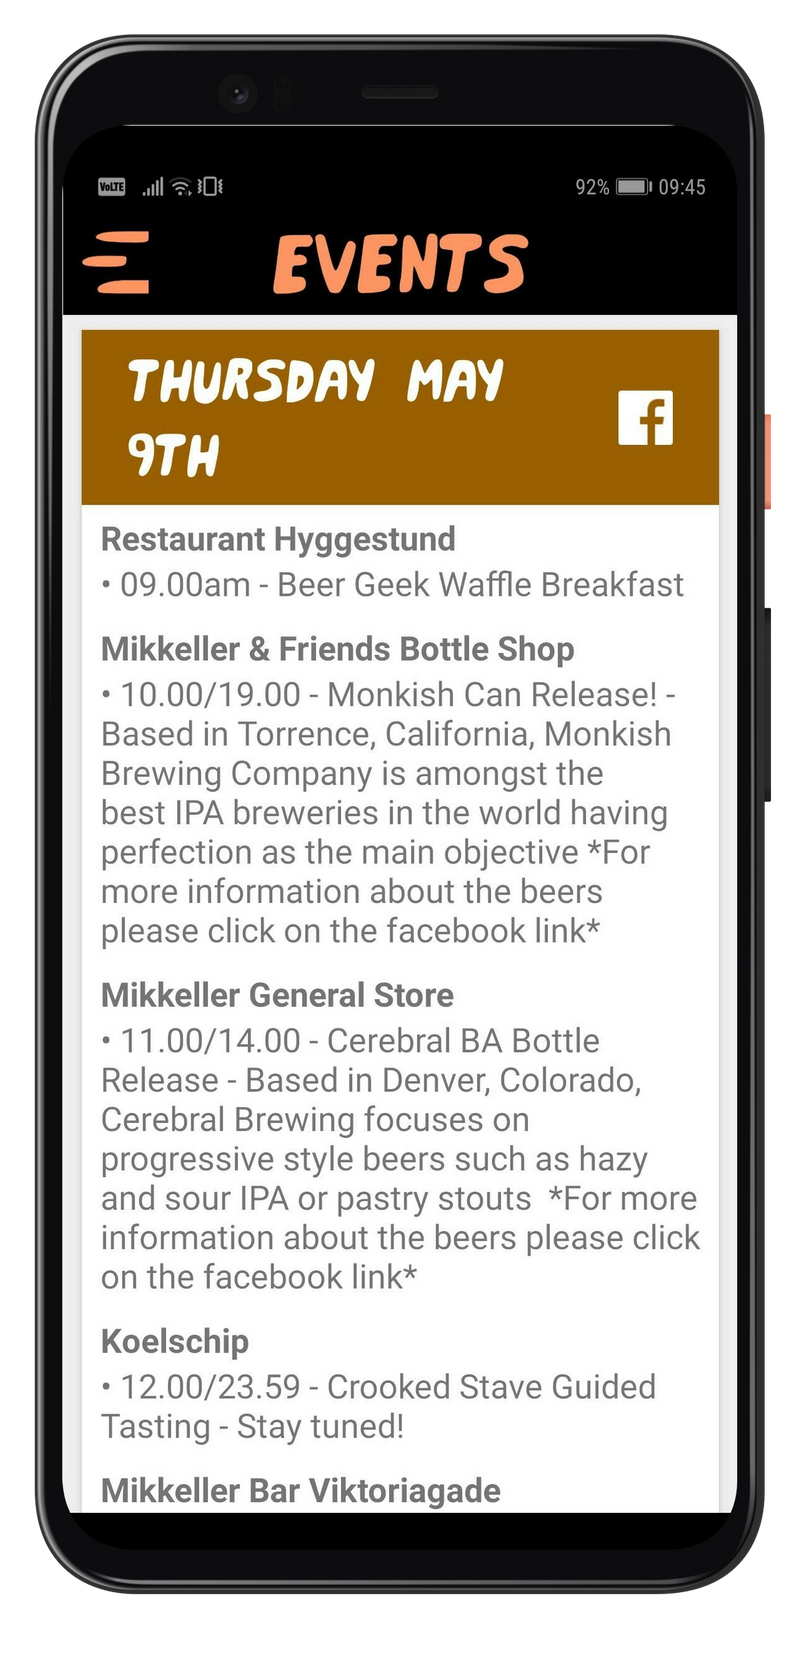 Mobile app showing list of events